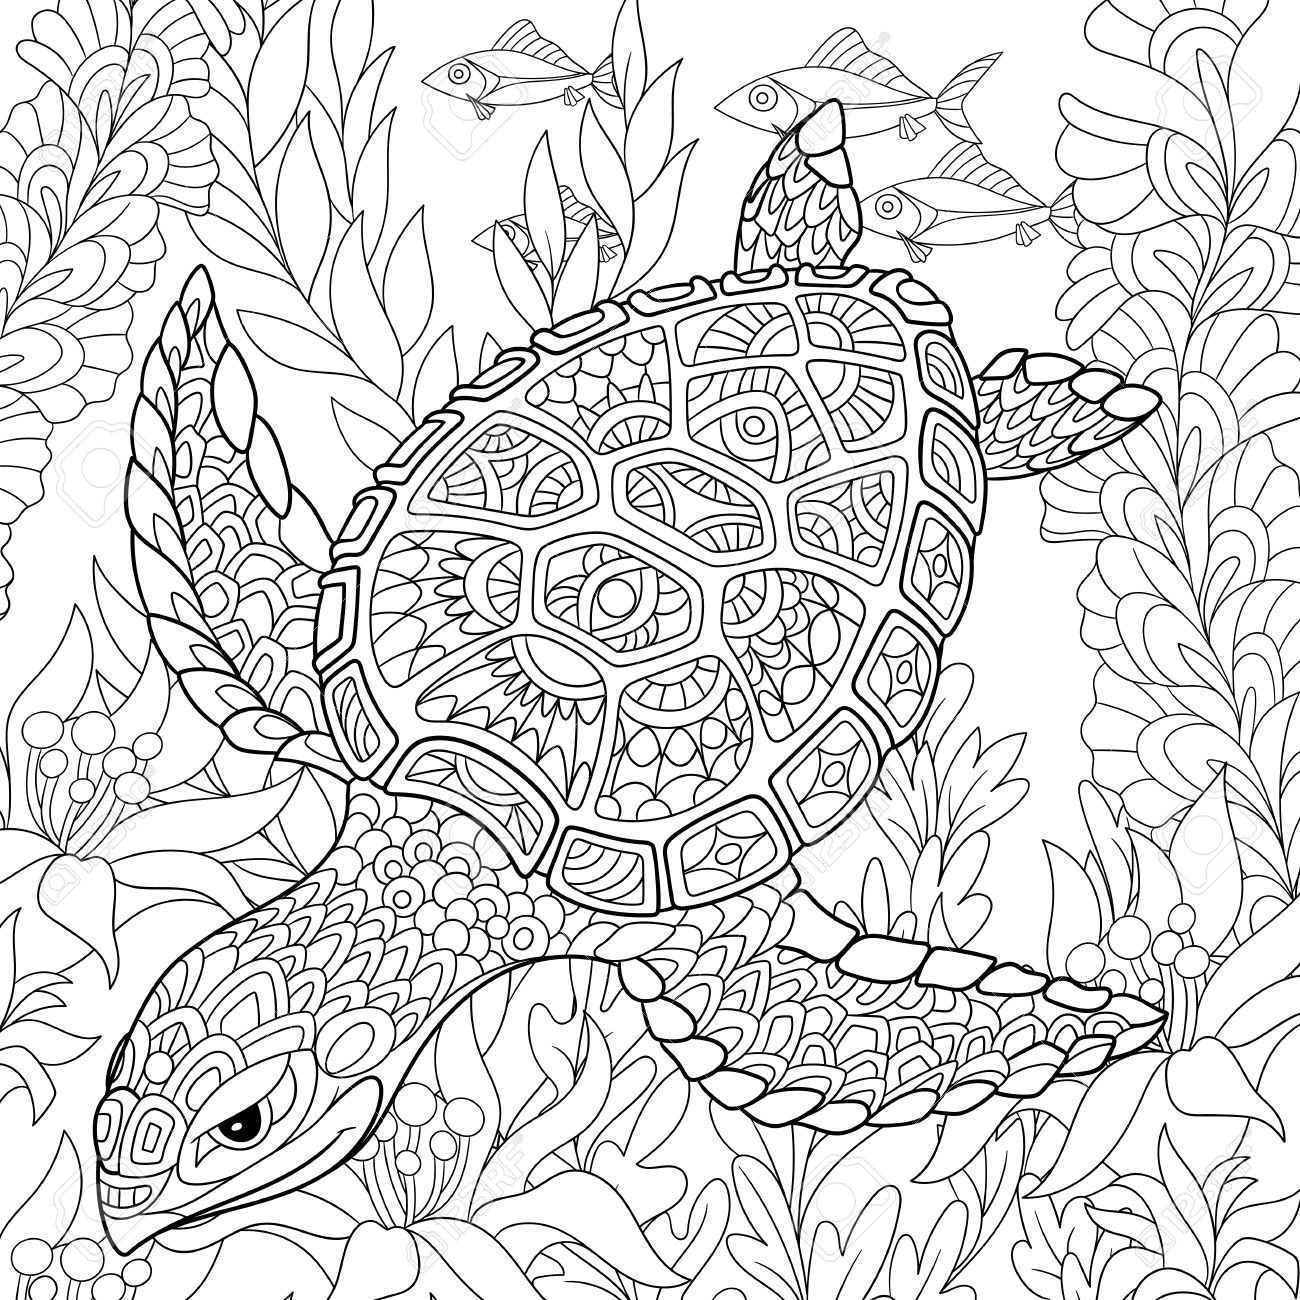 cartoon turtle swimming among sea algae hand drawn sketch for adult antistress coloring page - Turtle Coloring Pages For Adults